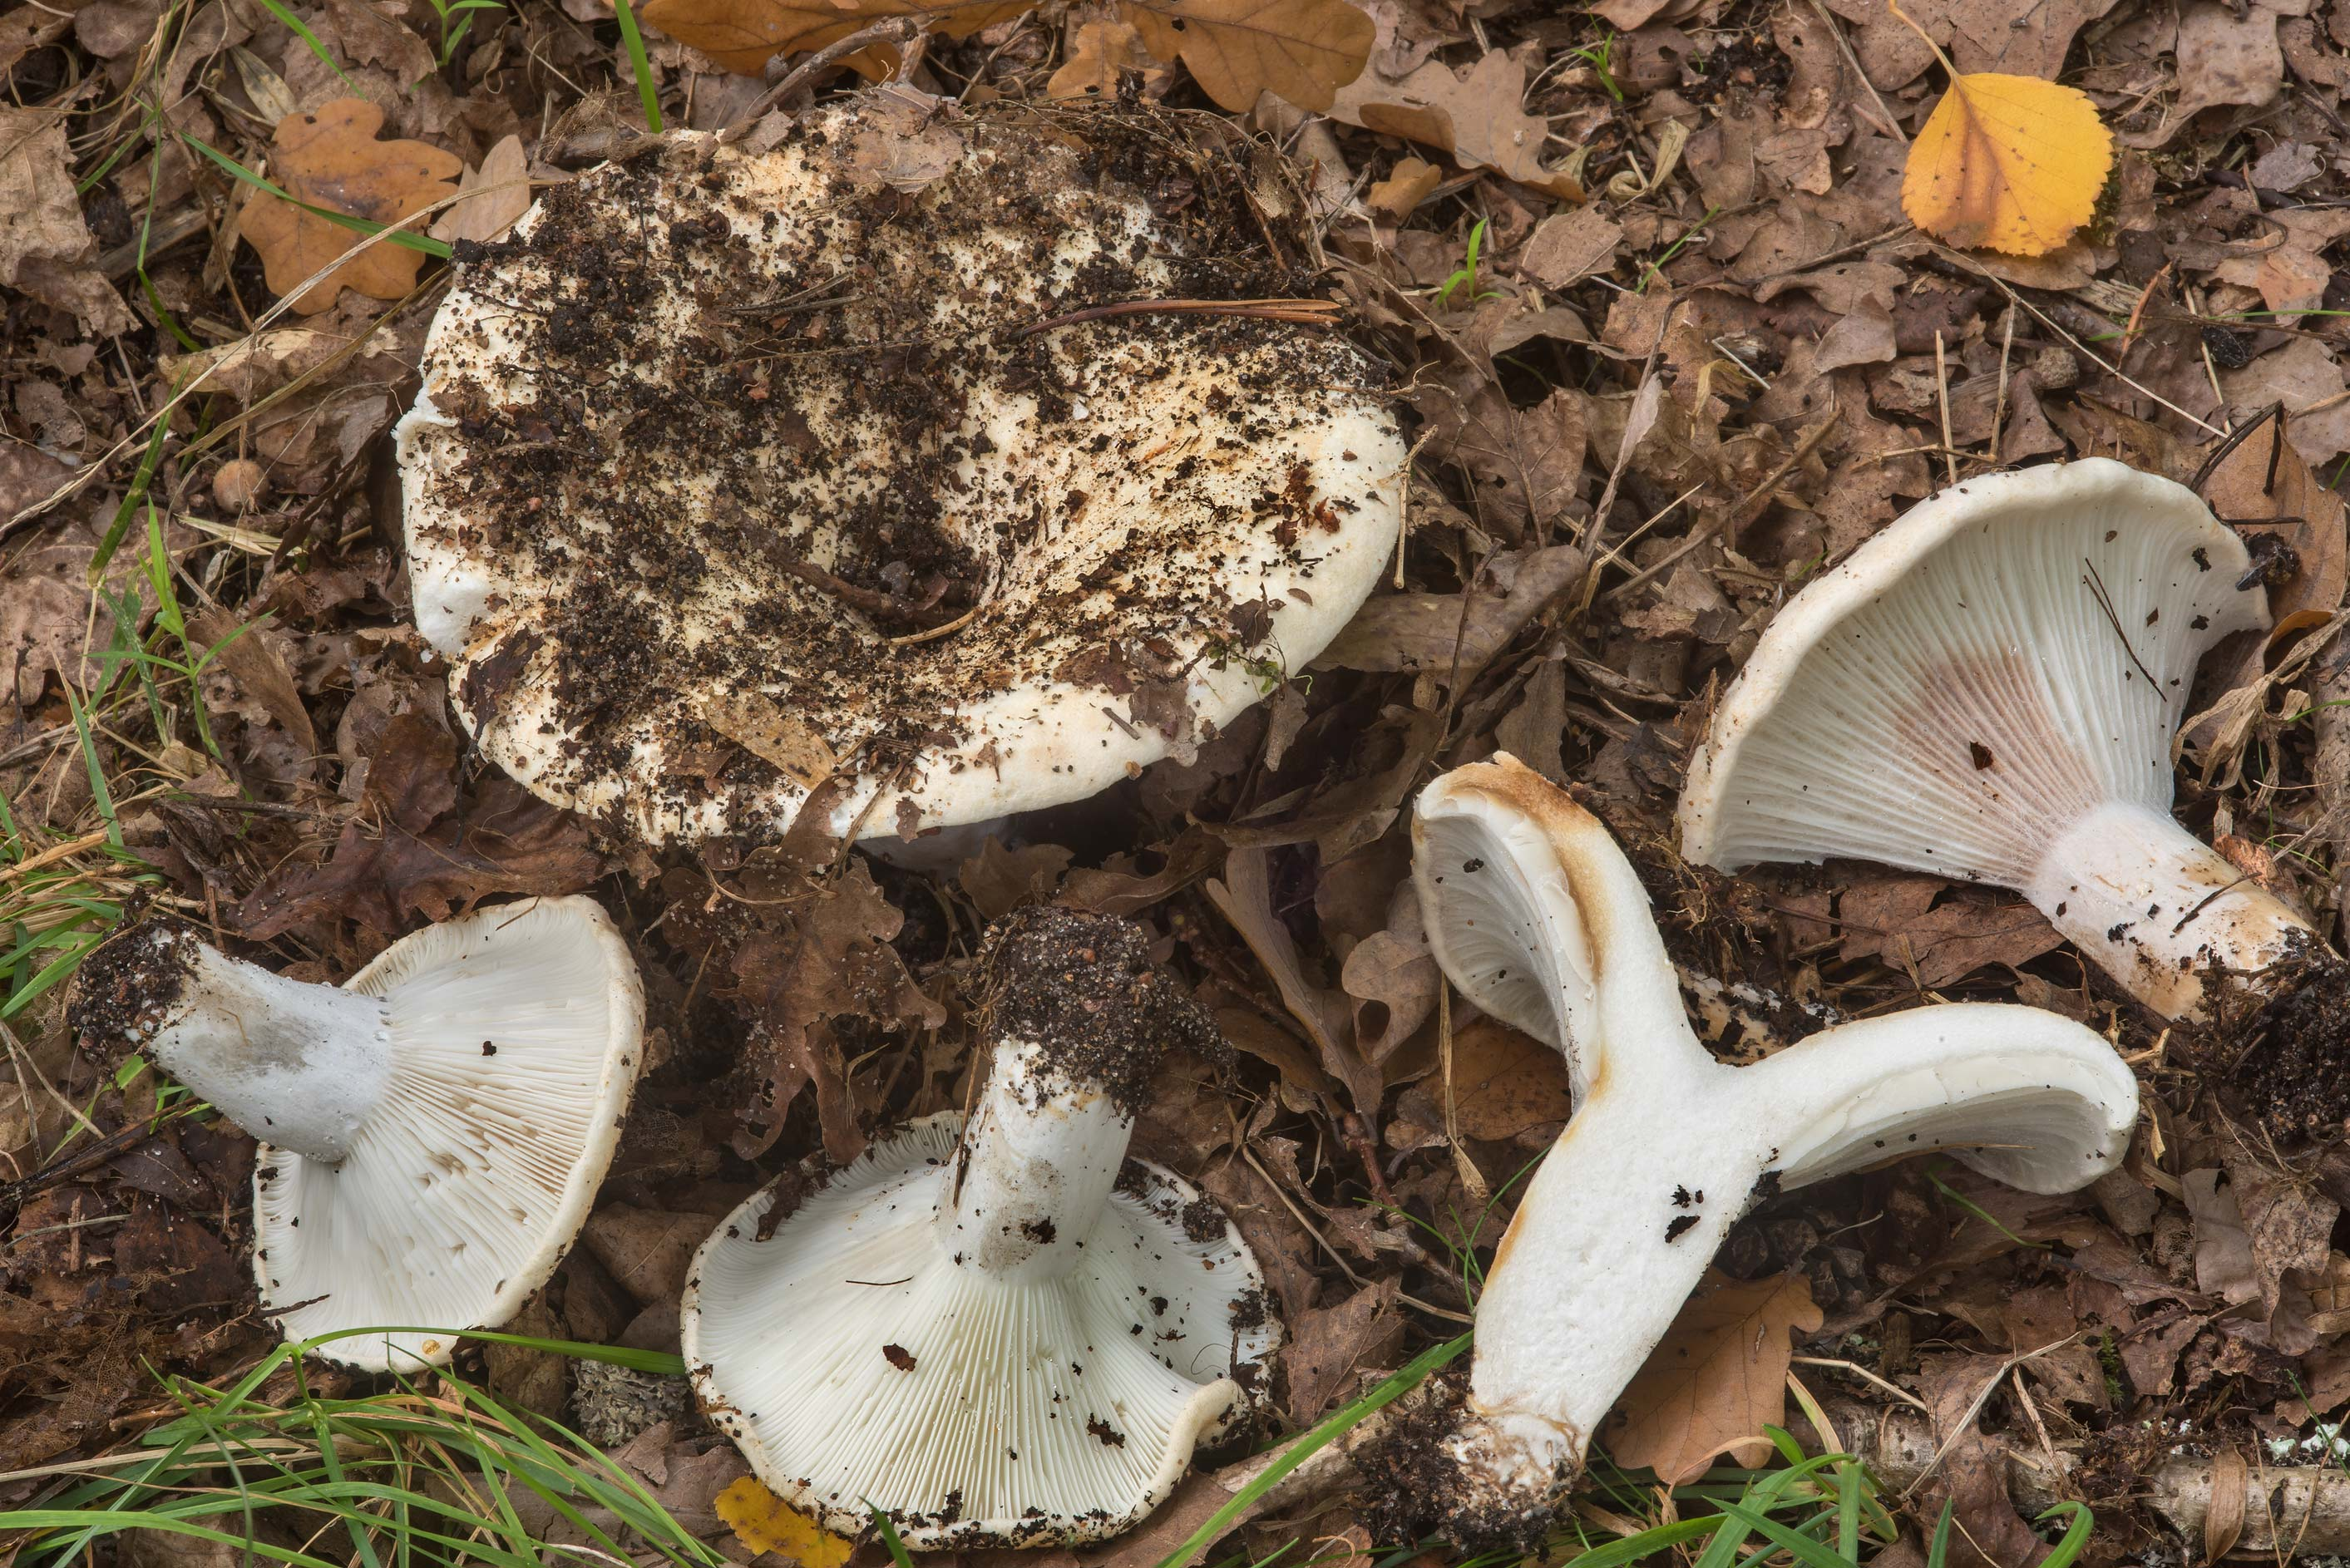 Milk white brittlegill mushrooms (Russula delica...west from St.Petersburg. Russia